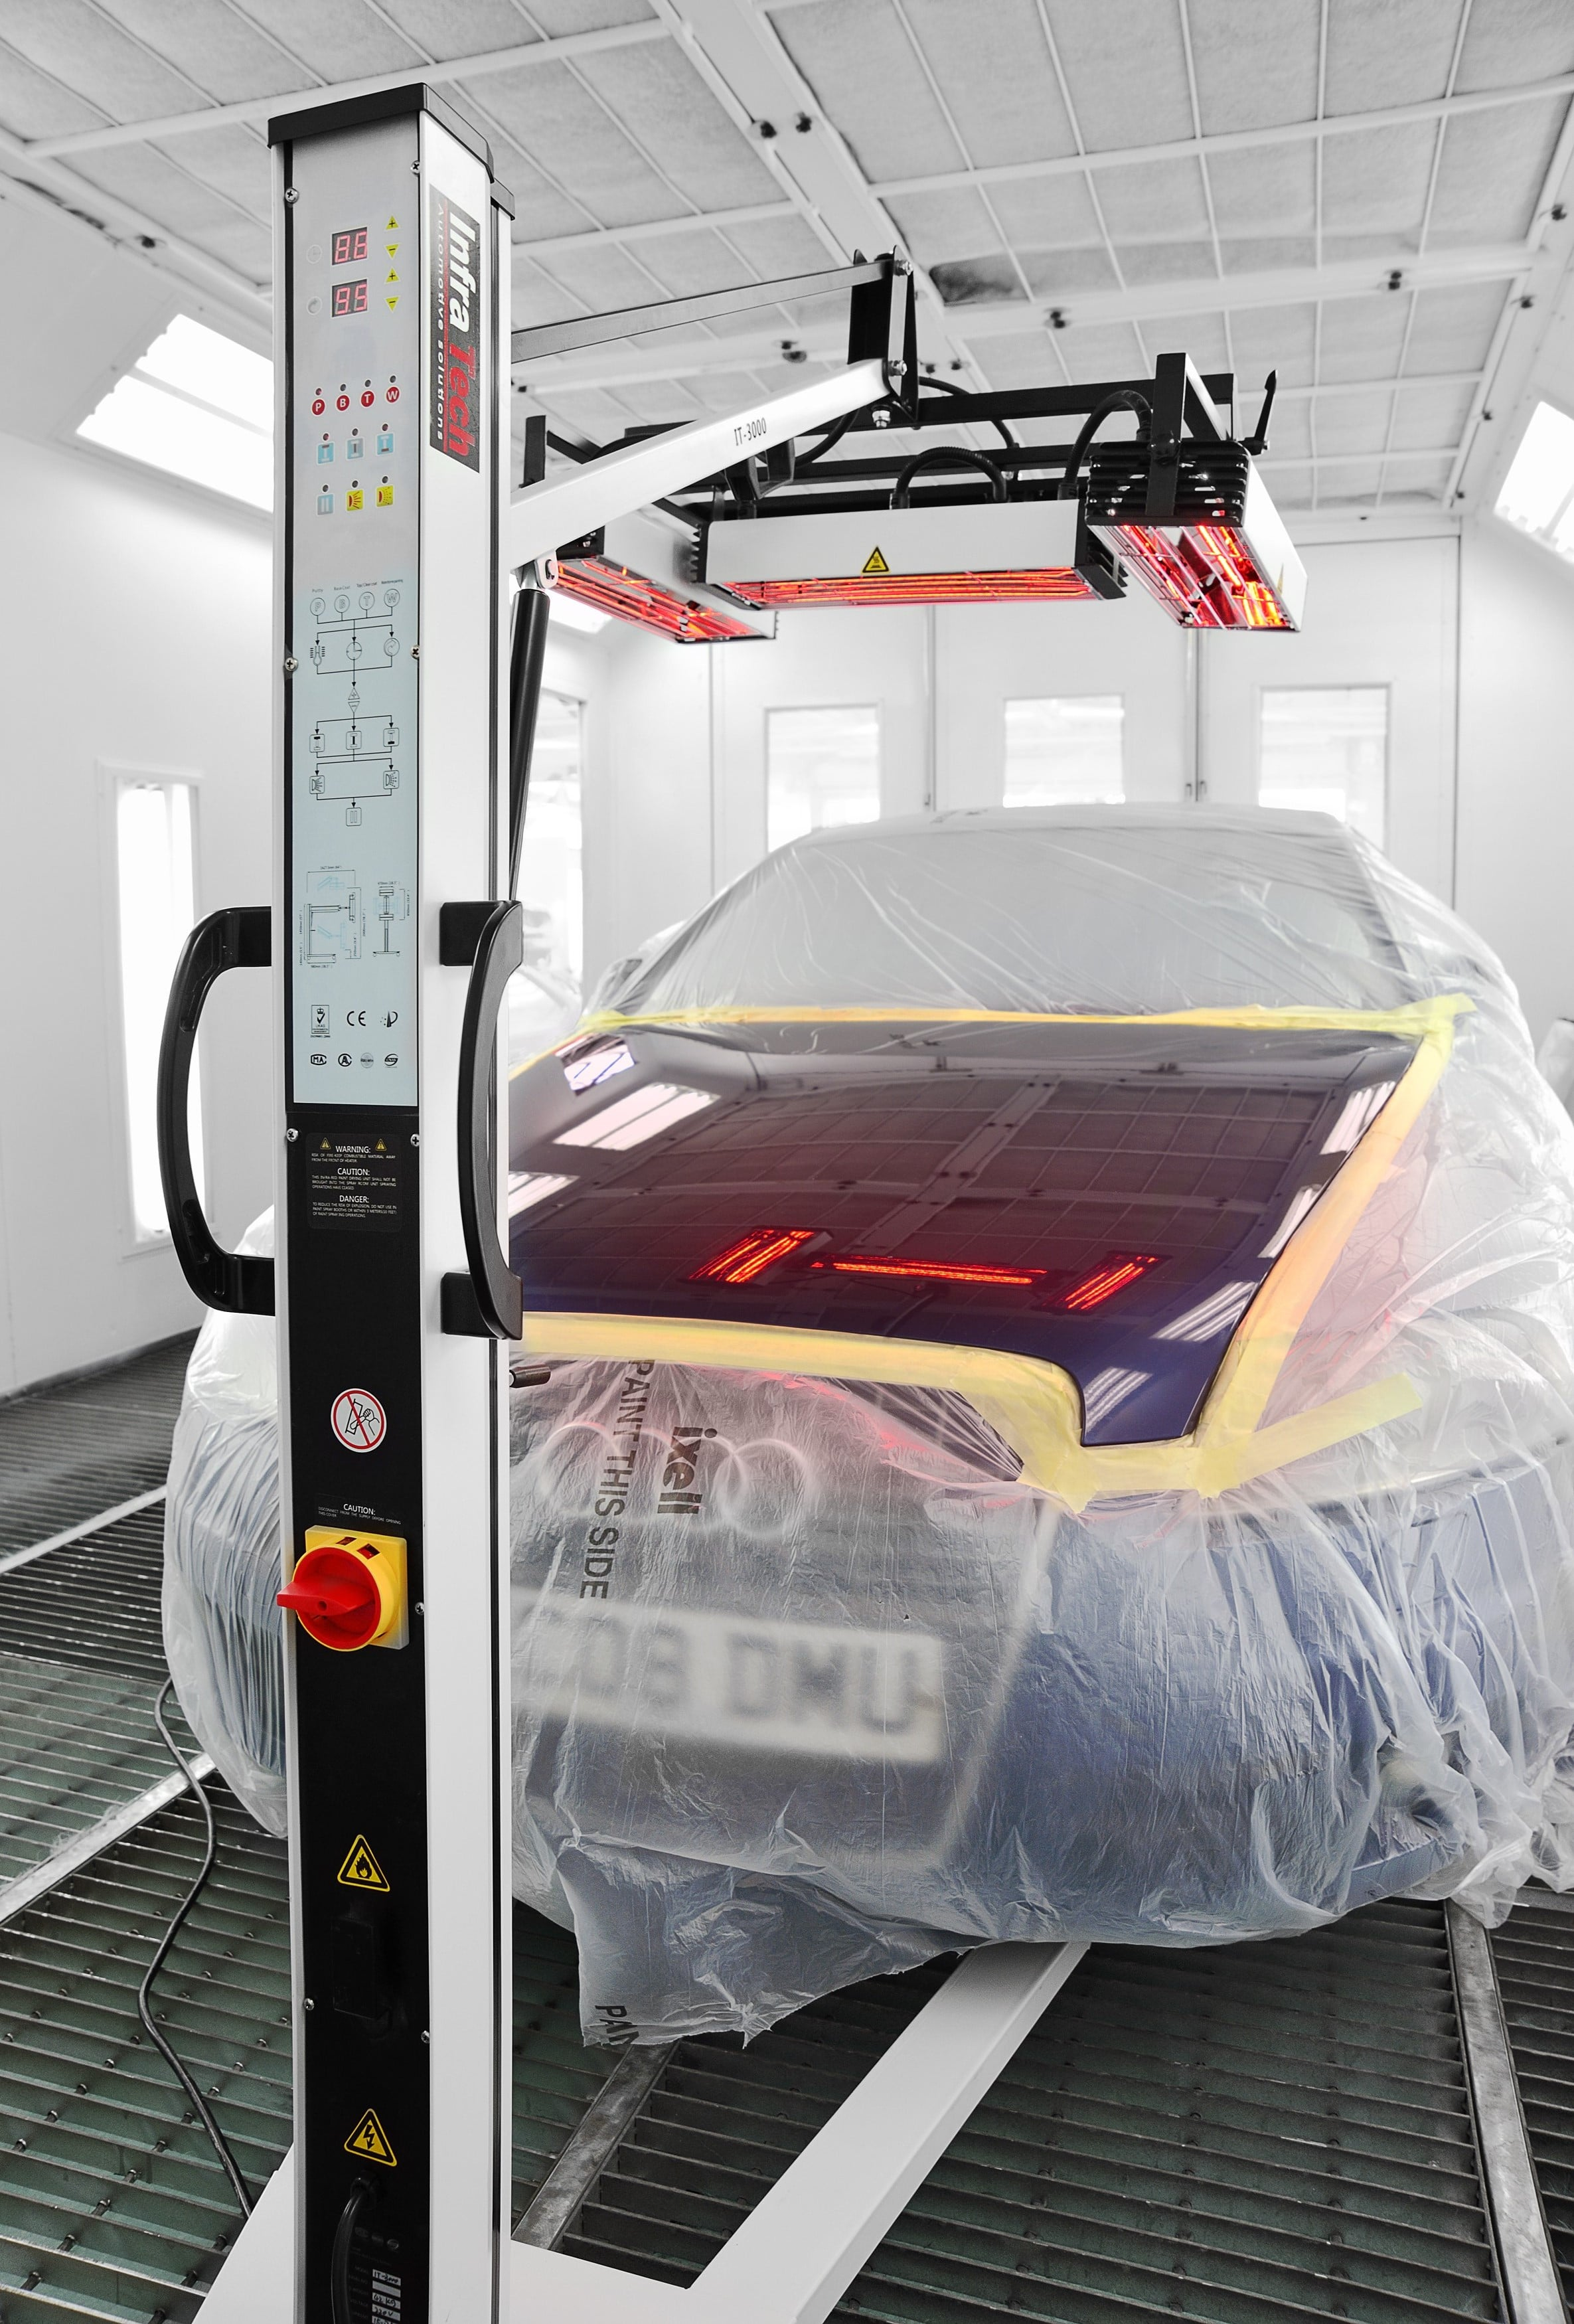 other uses for infratech's infrared curing lamps